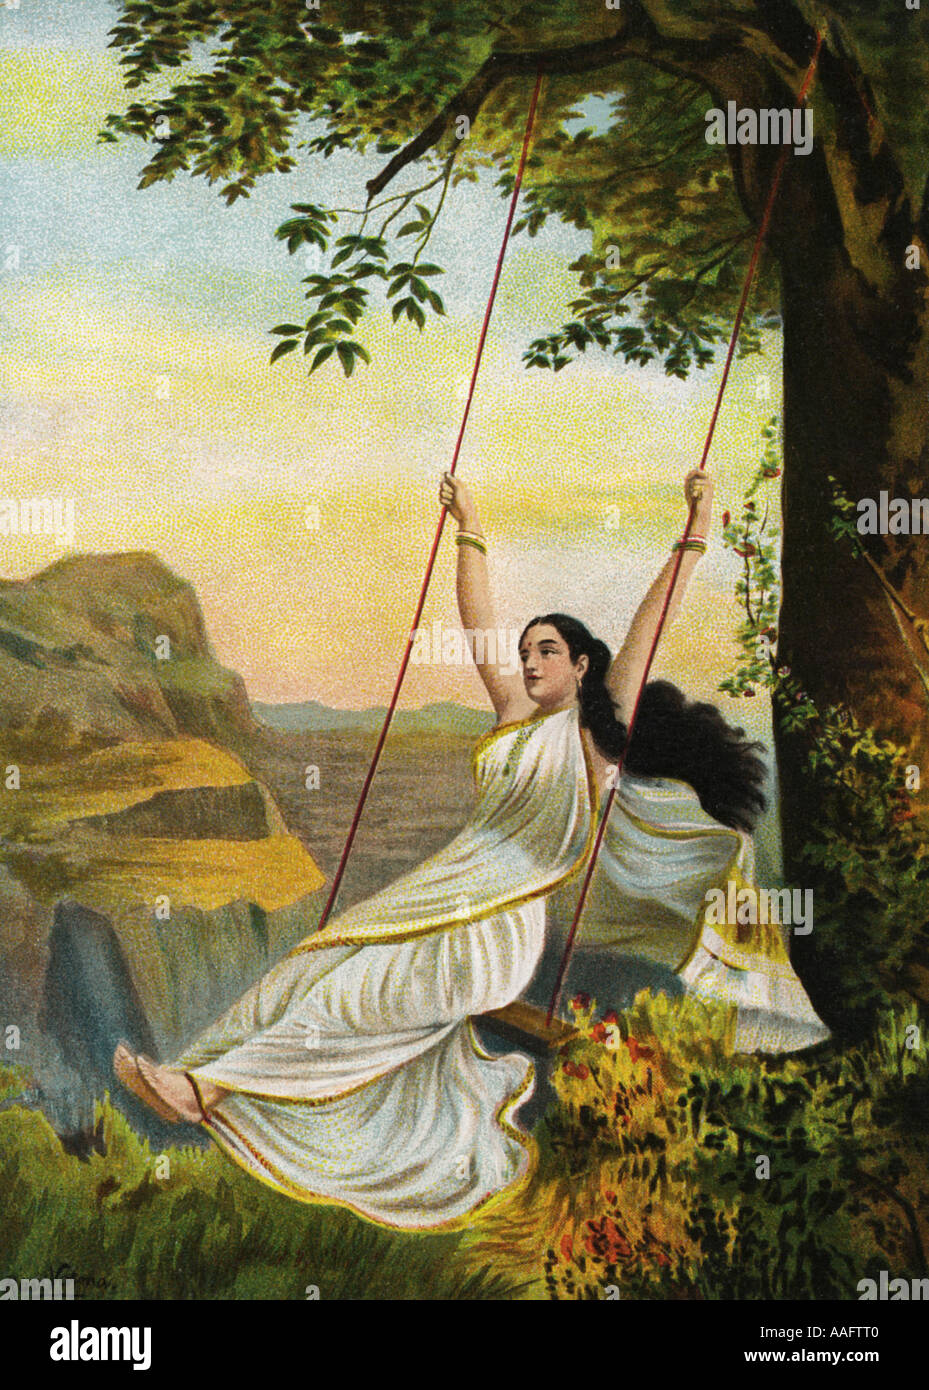 Indian painting illustration of Mohini the Goddess of Beauty sitting on a swing wearing a saree sari hairs flying India Asia - Stock Image